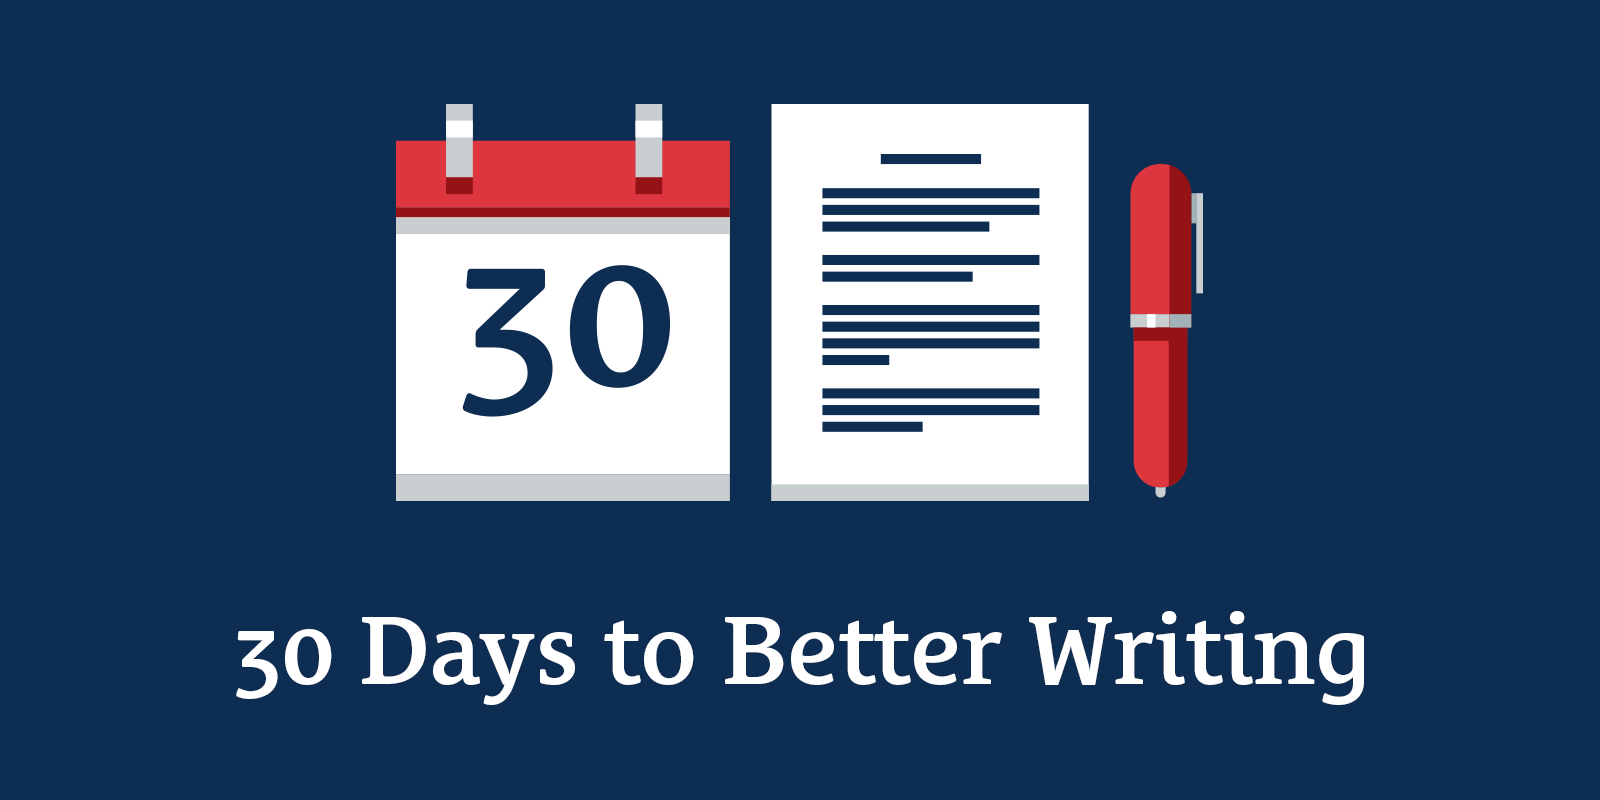 30 Days to Better Writing